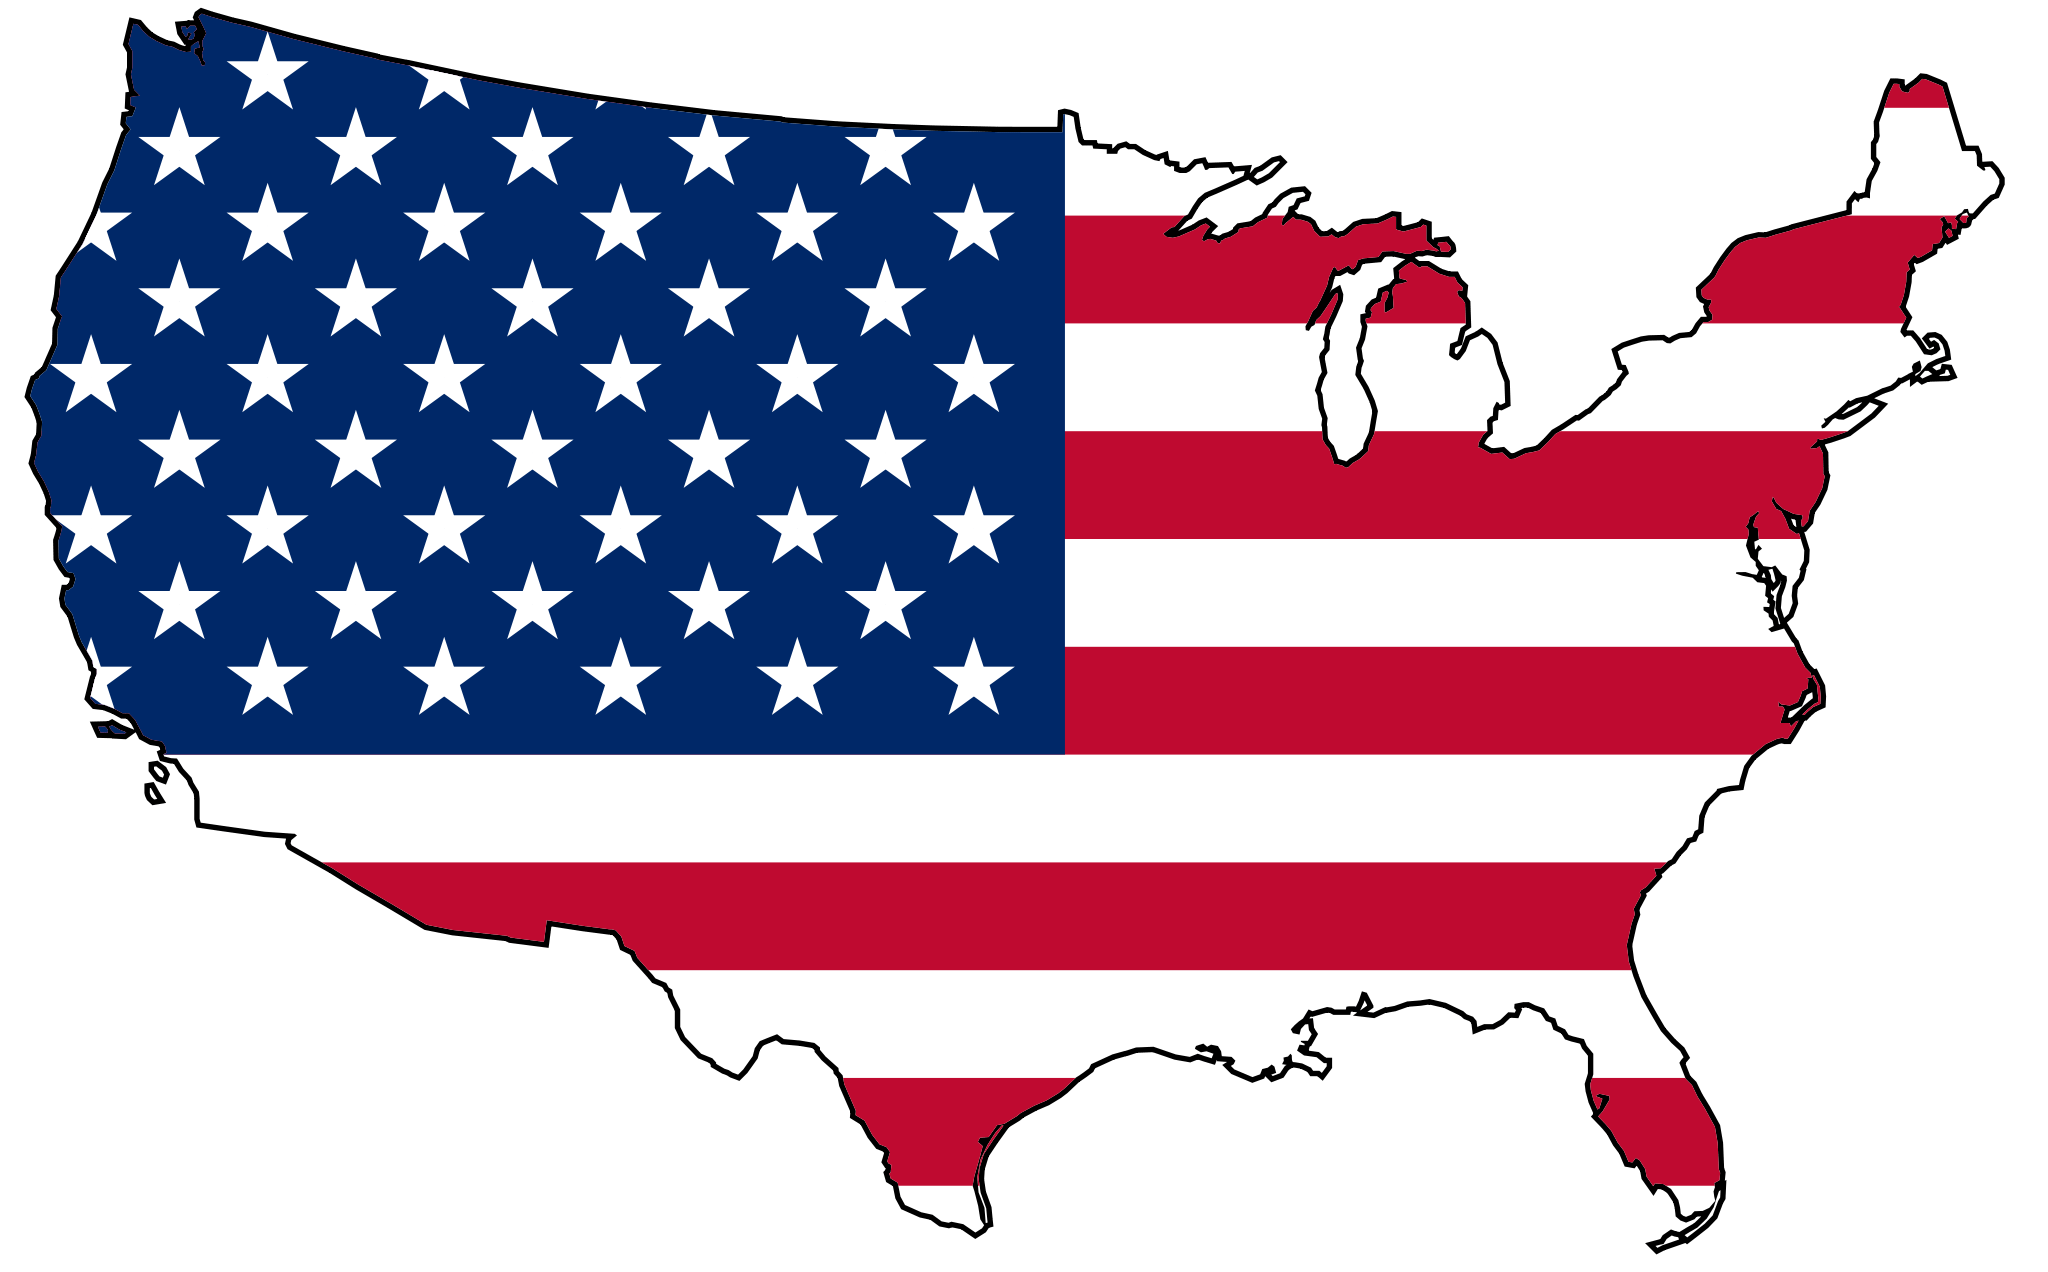 City of Chicago Map of the United States